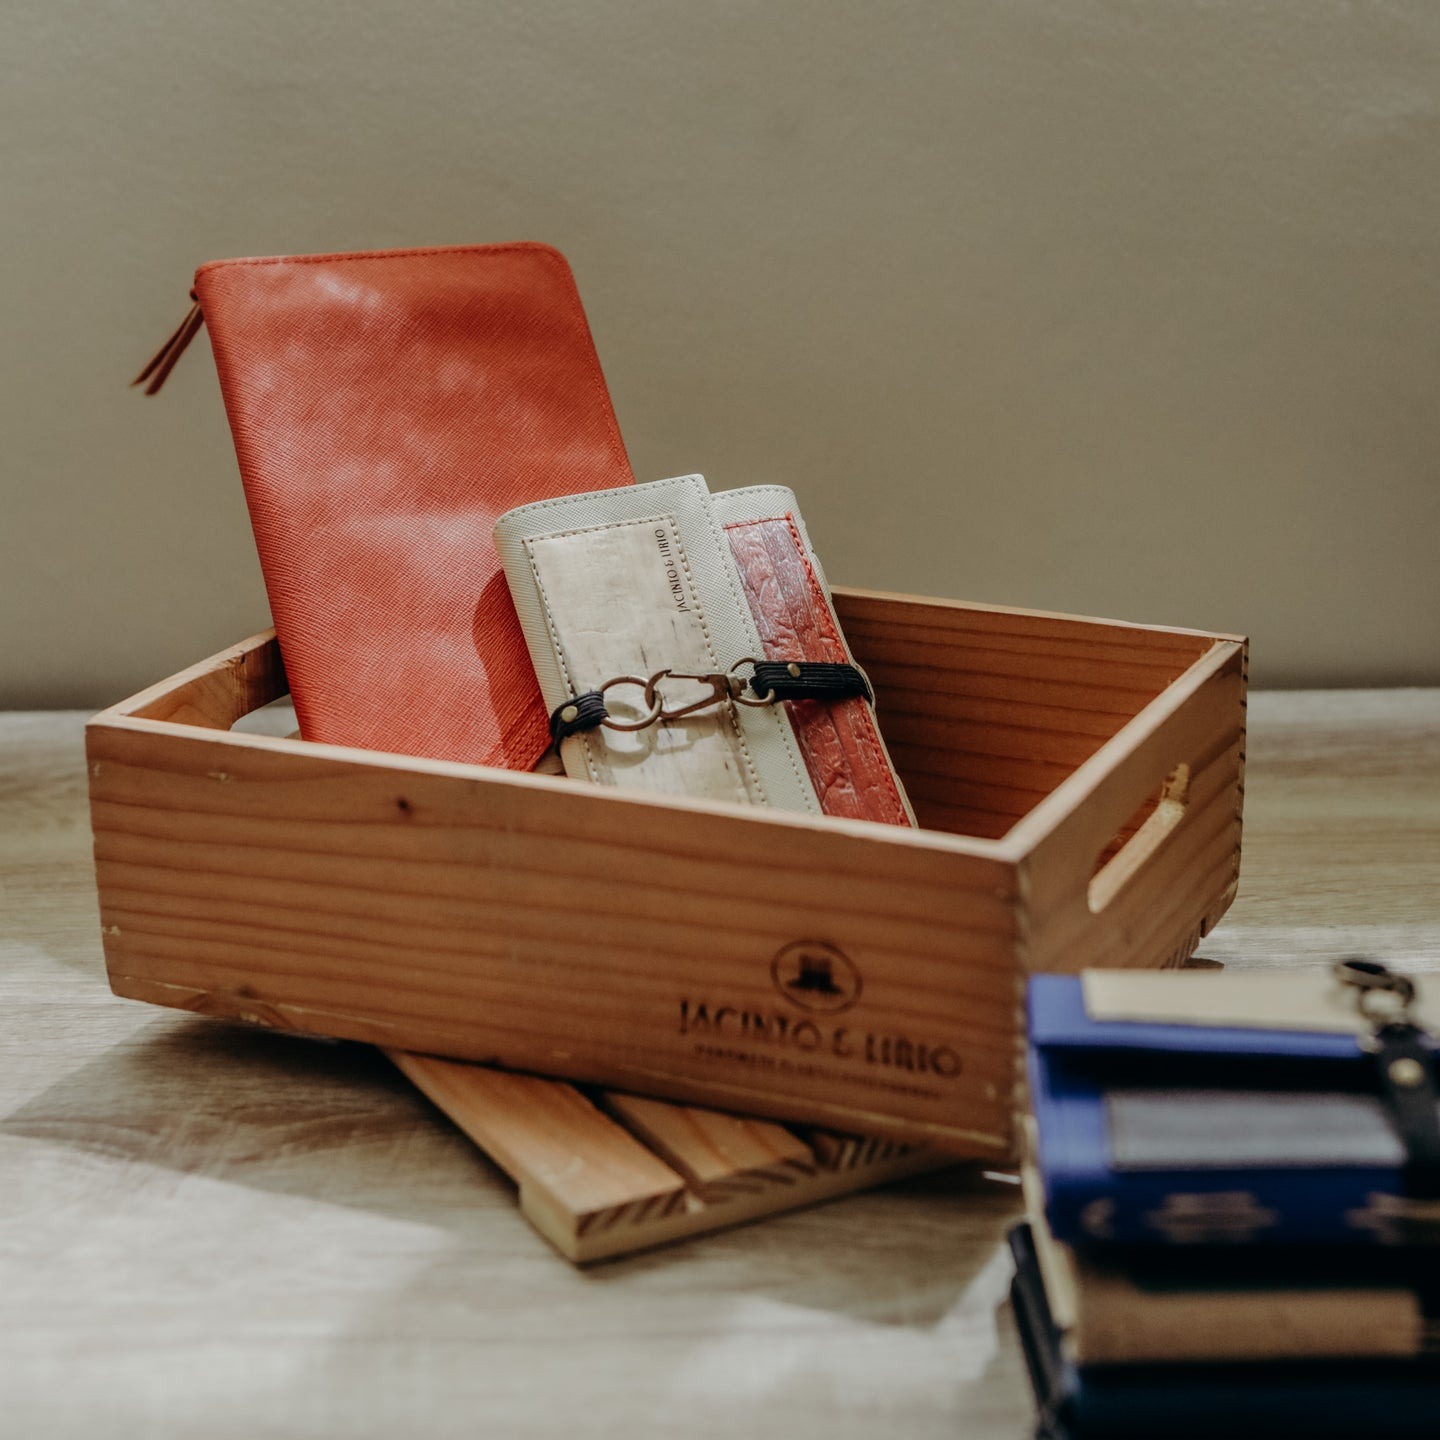 Jacinto and Lirio Adhikain Wooden Crate Gift Box with Pacem Wallet and Bucket List Travel Wallet inside